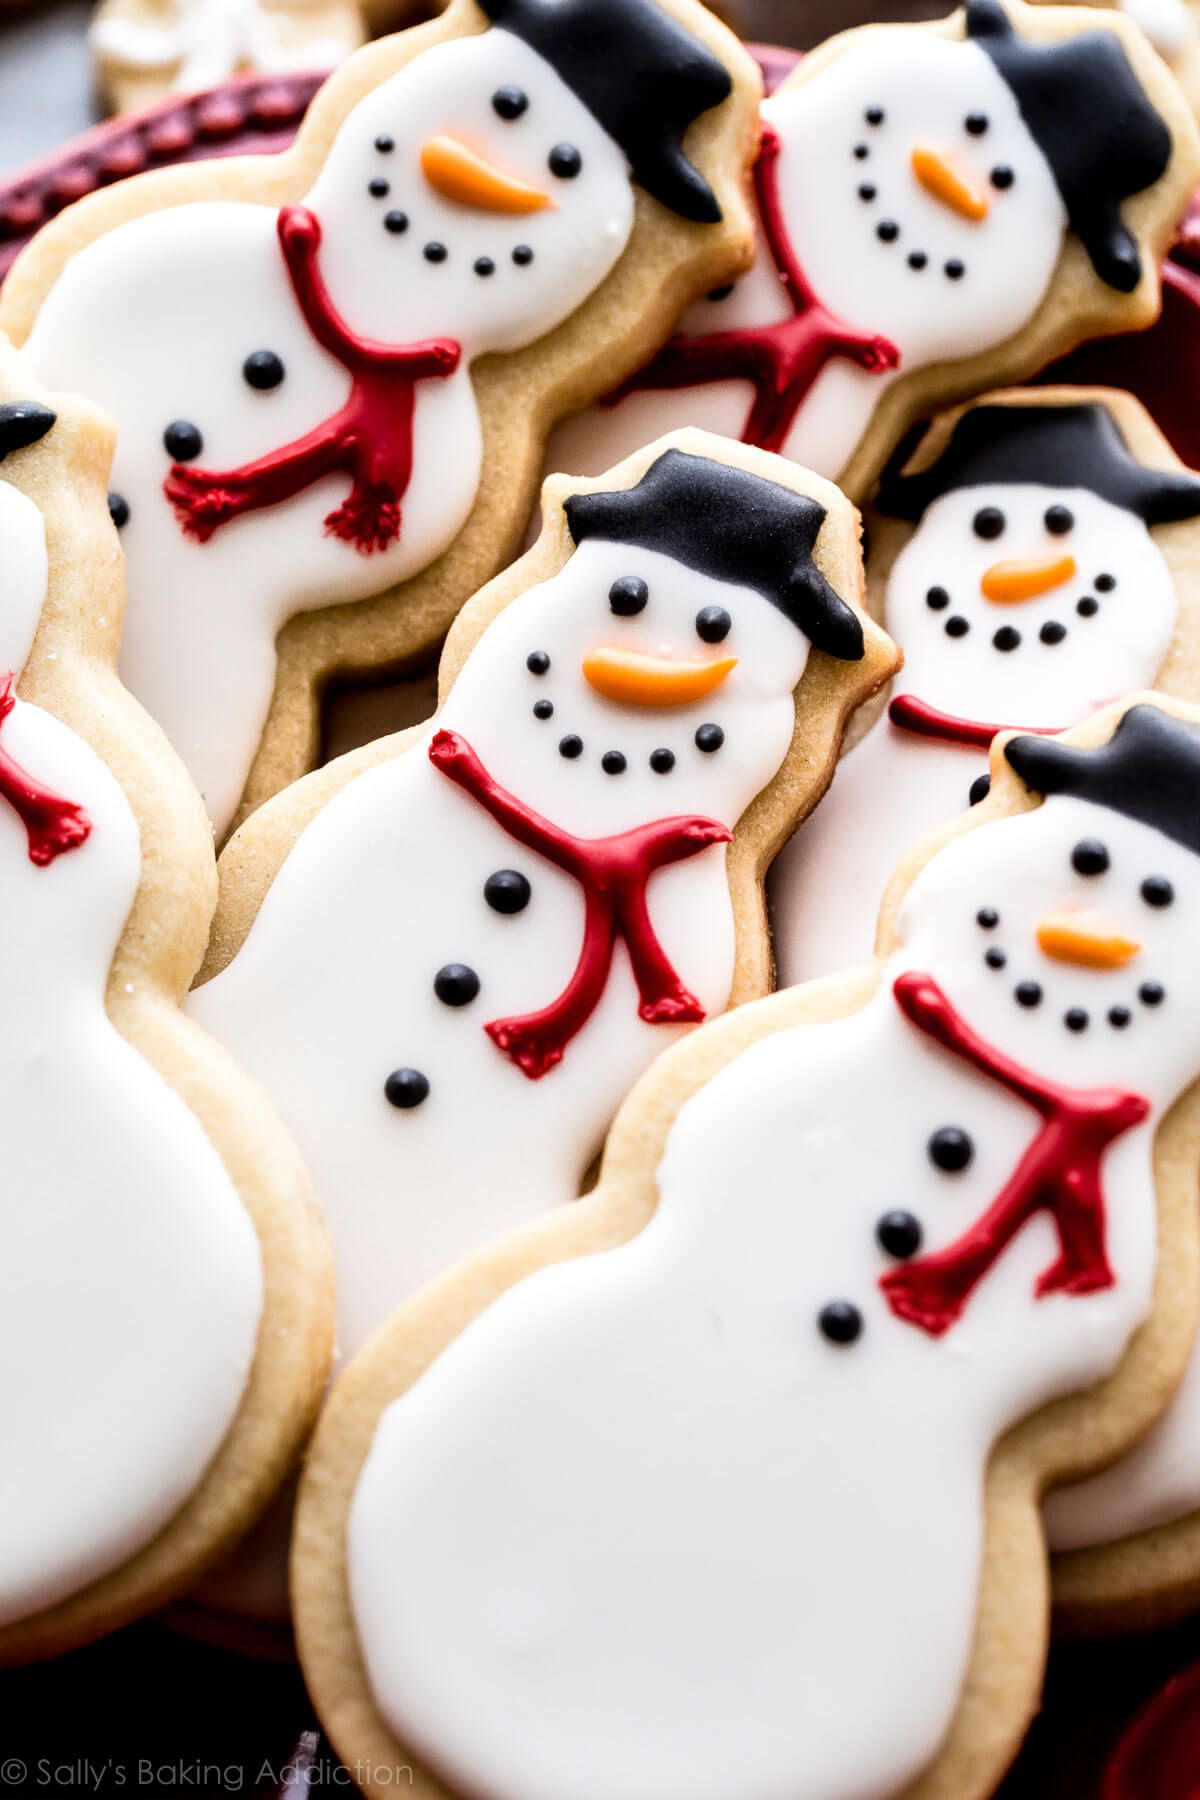 Learn how to make adorable snowman and snowflake sugar